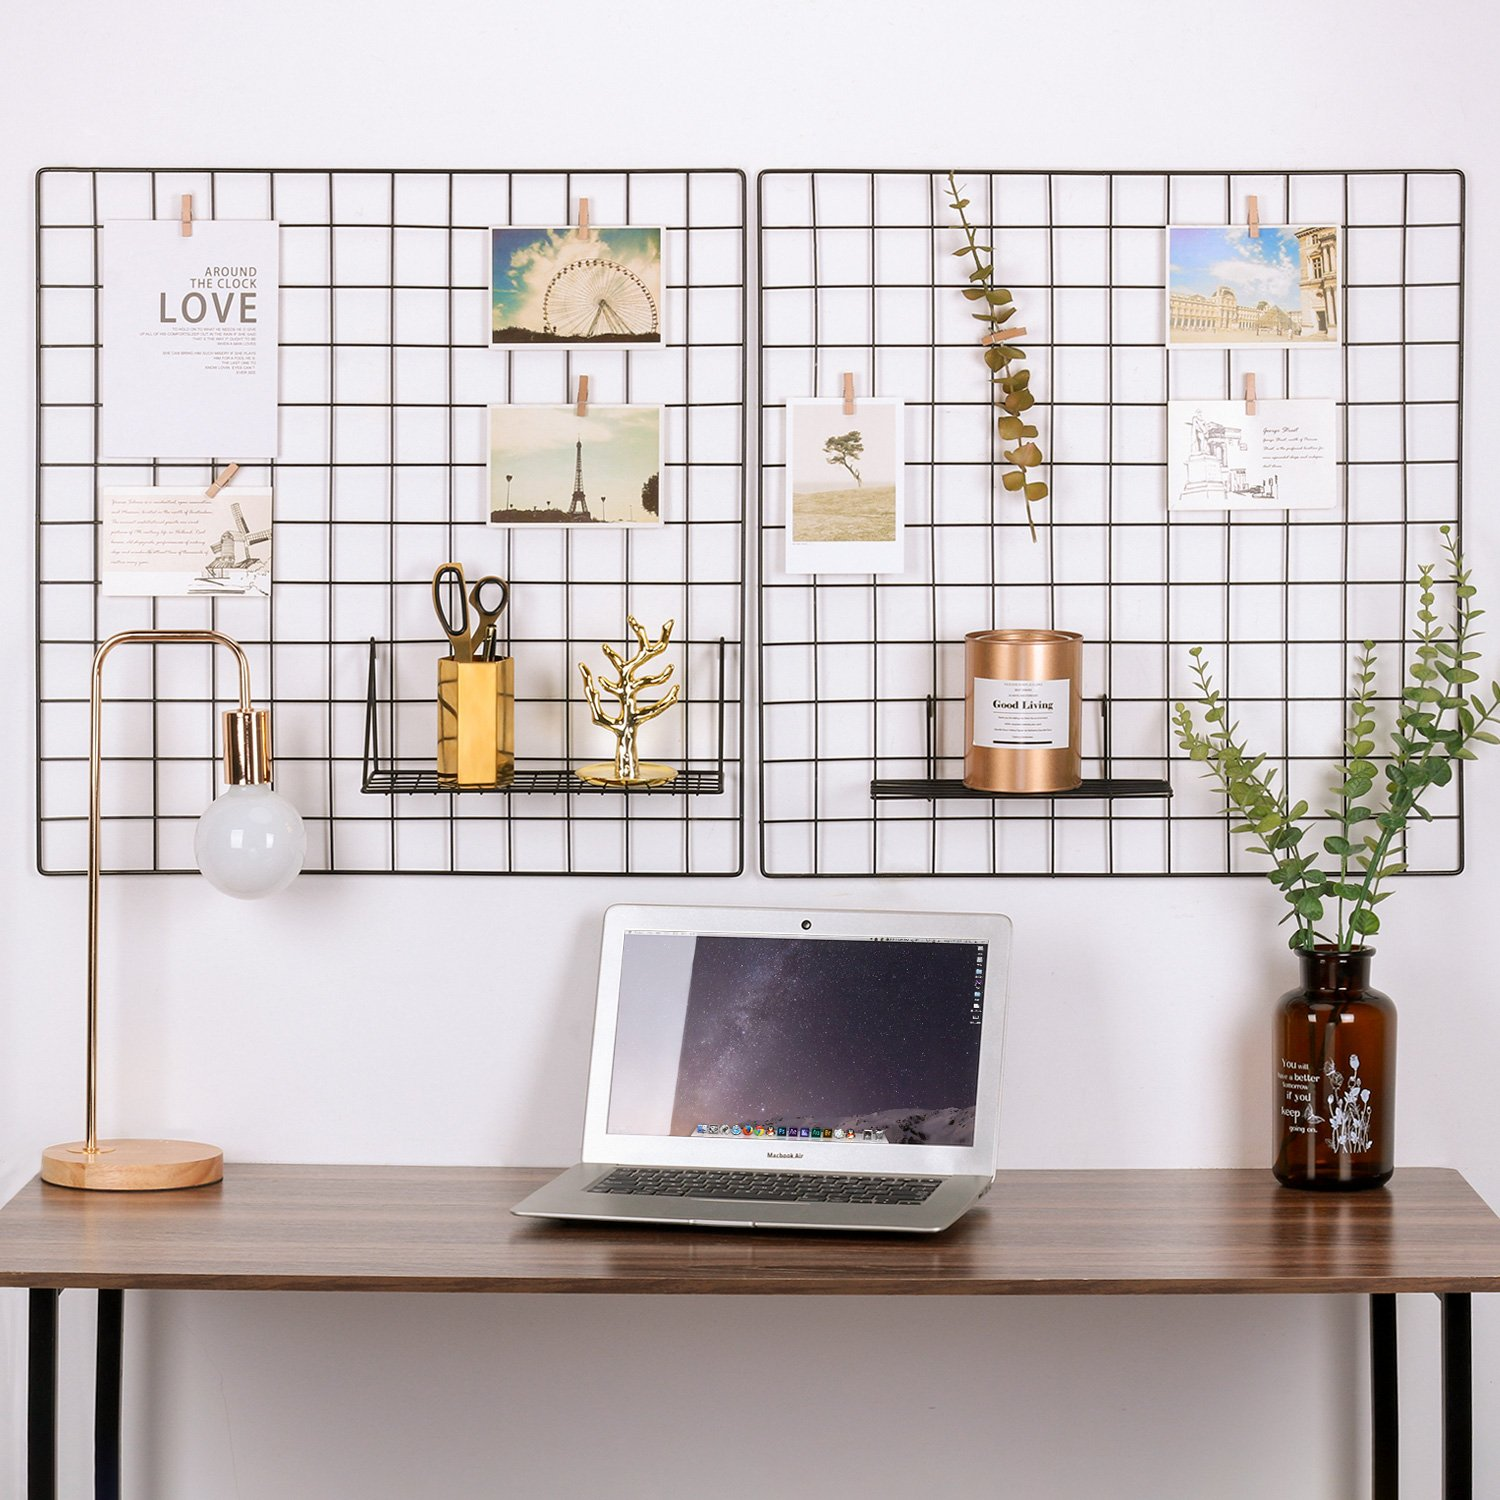 Kufox Painted Wire Wall Grid Panel, Multifunction Photo Hanging Display and Wall Storage Organizer, Pack of 2 , Size:23.6''x 23.6'', Square Black